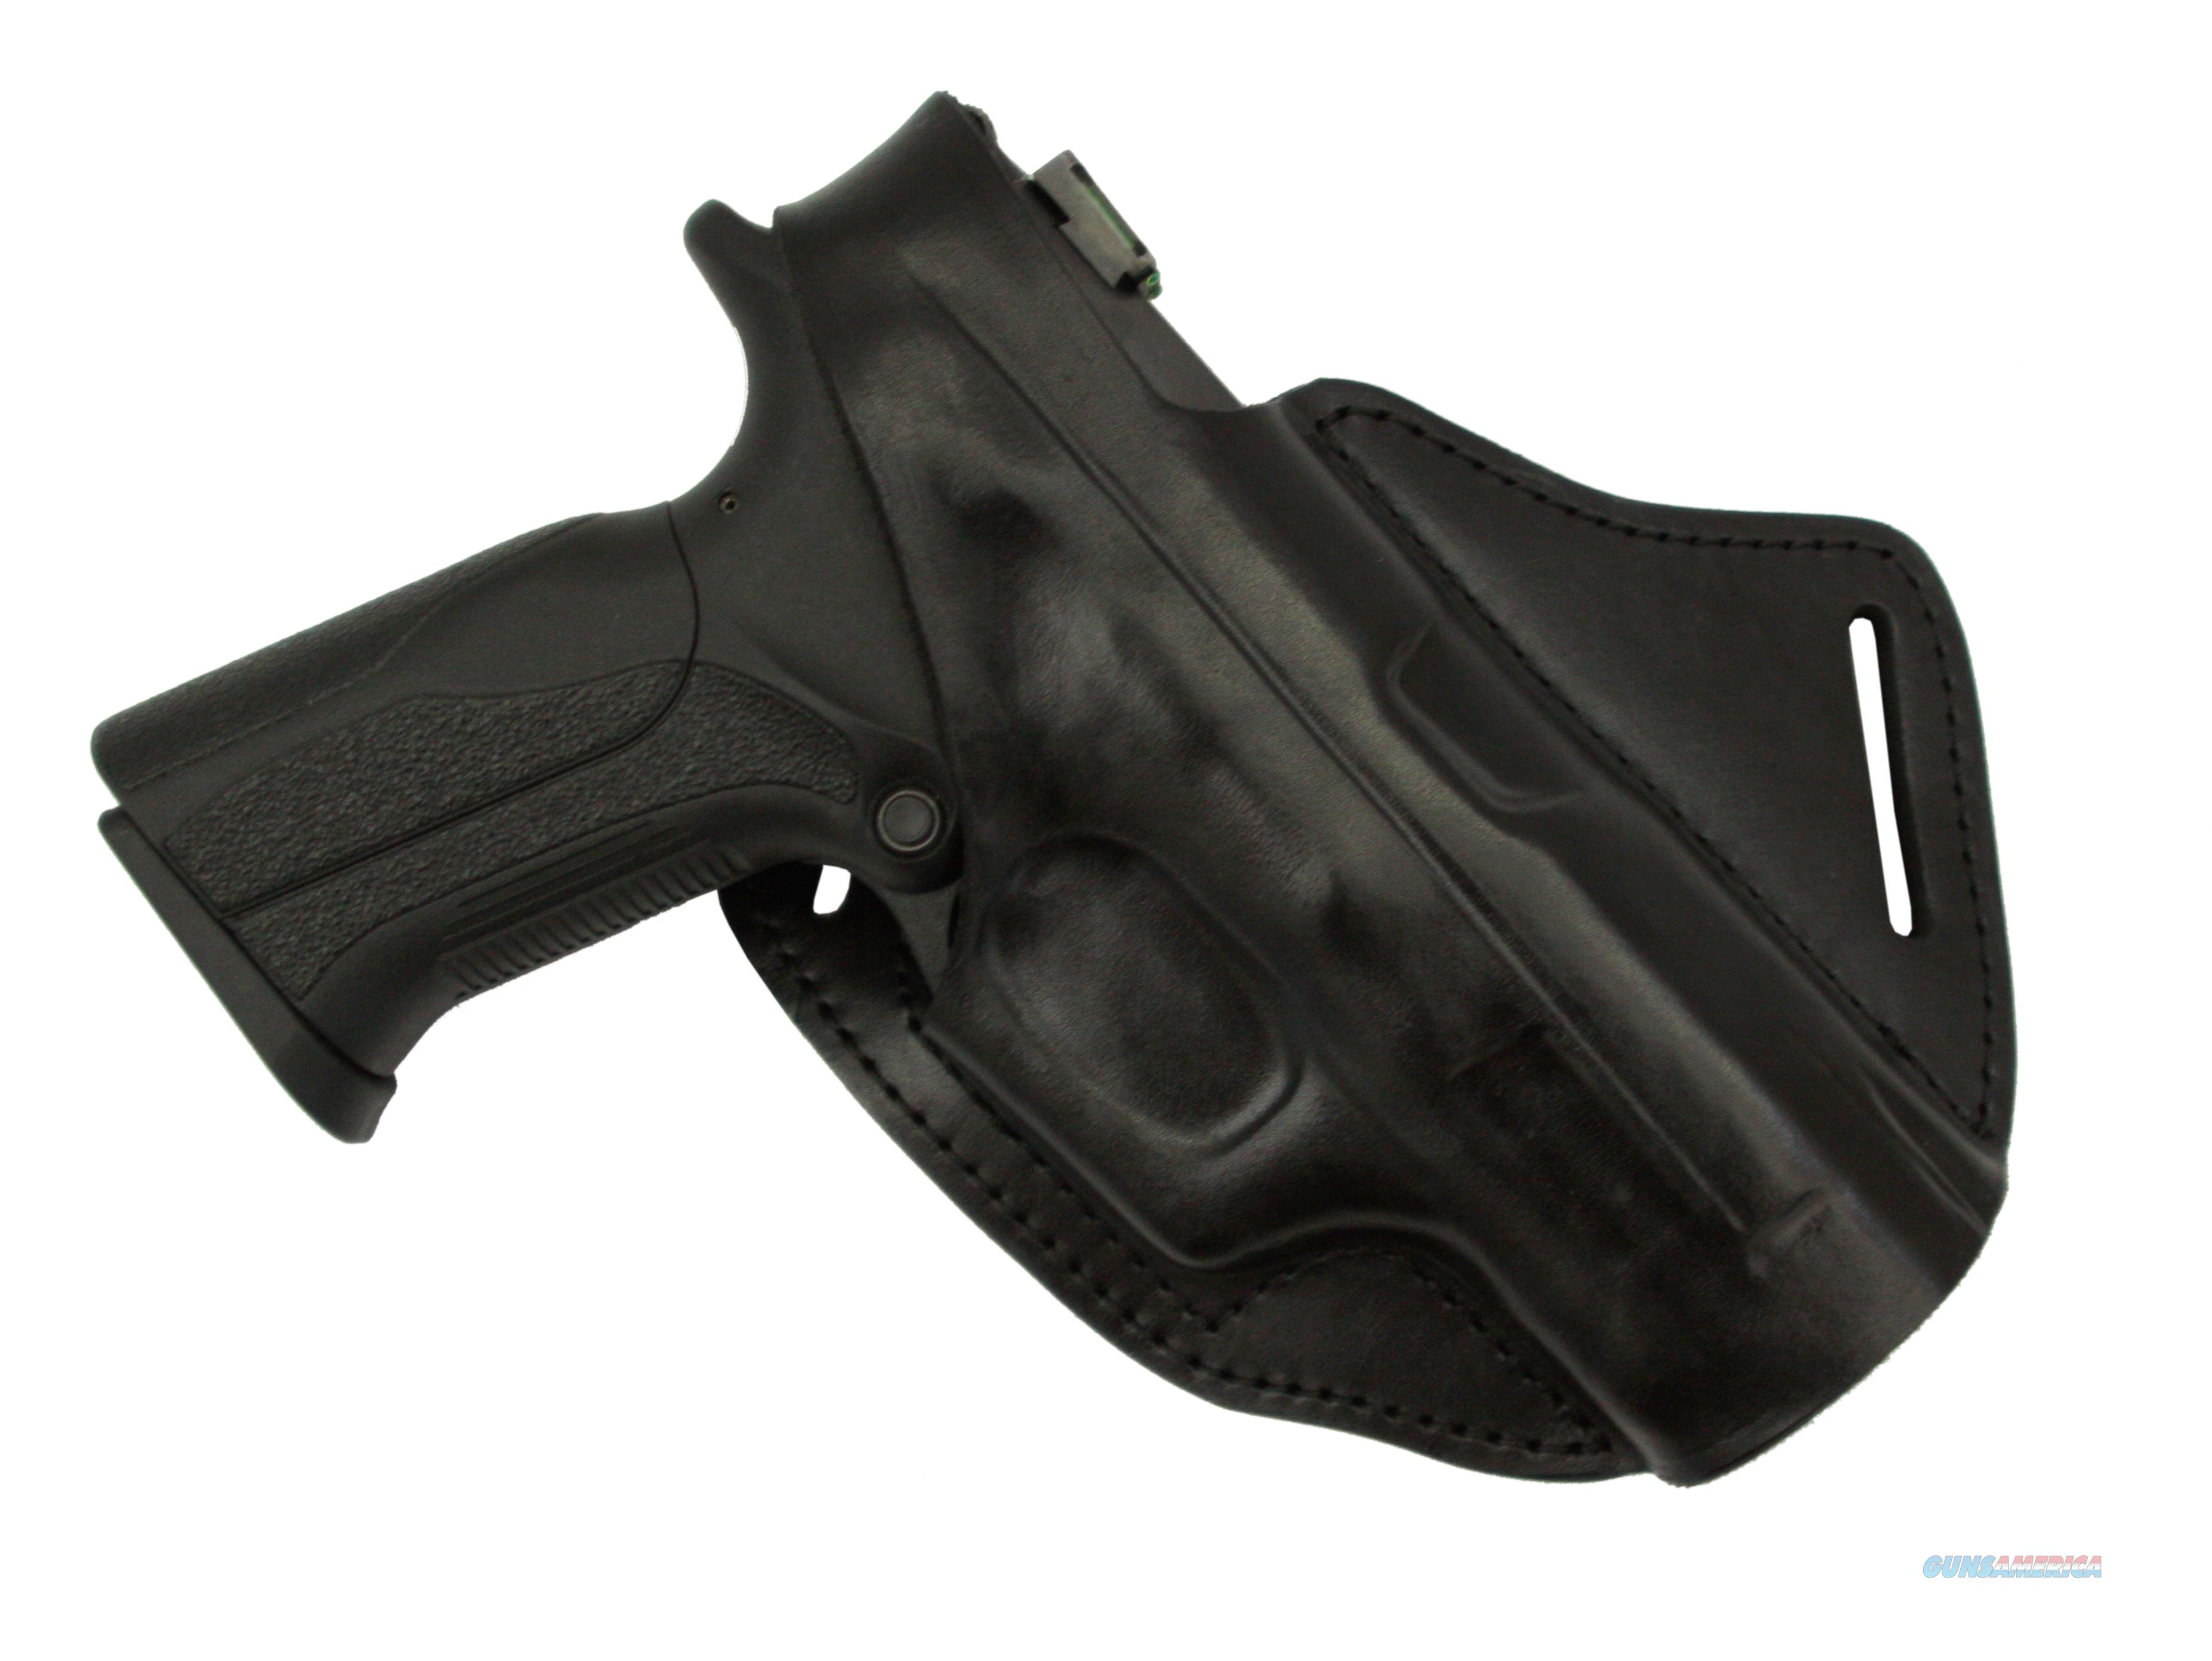 Cross Draw leather belt holster Springfield XDM  Non-Guns > Holsters and Gunleather > Concealed Carry